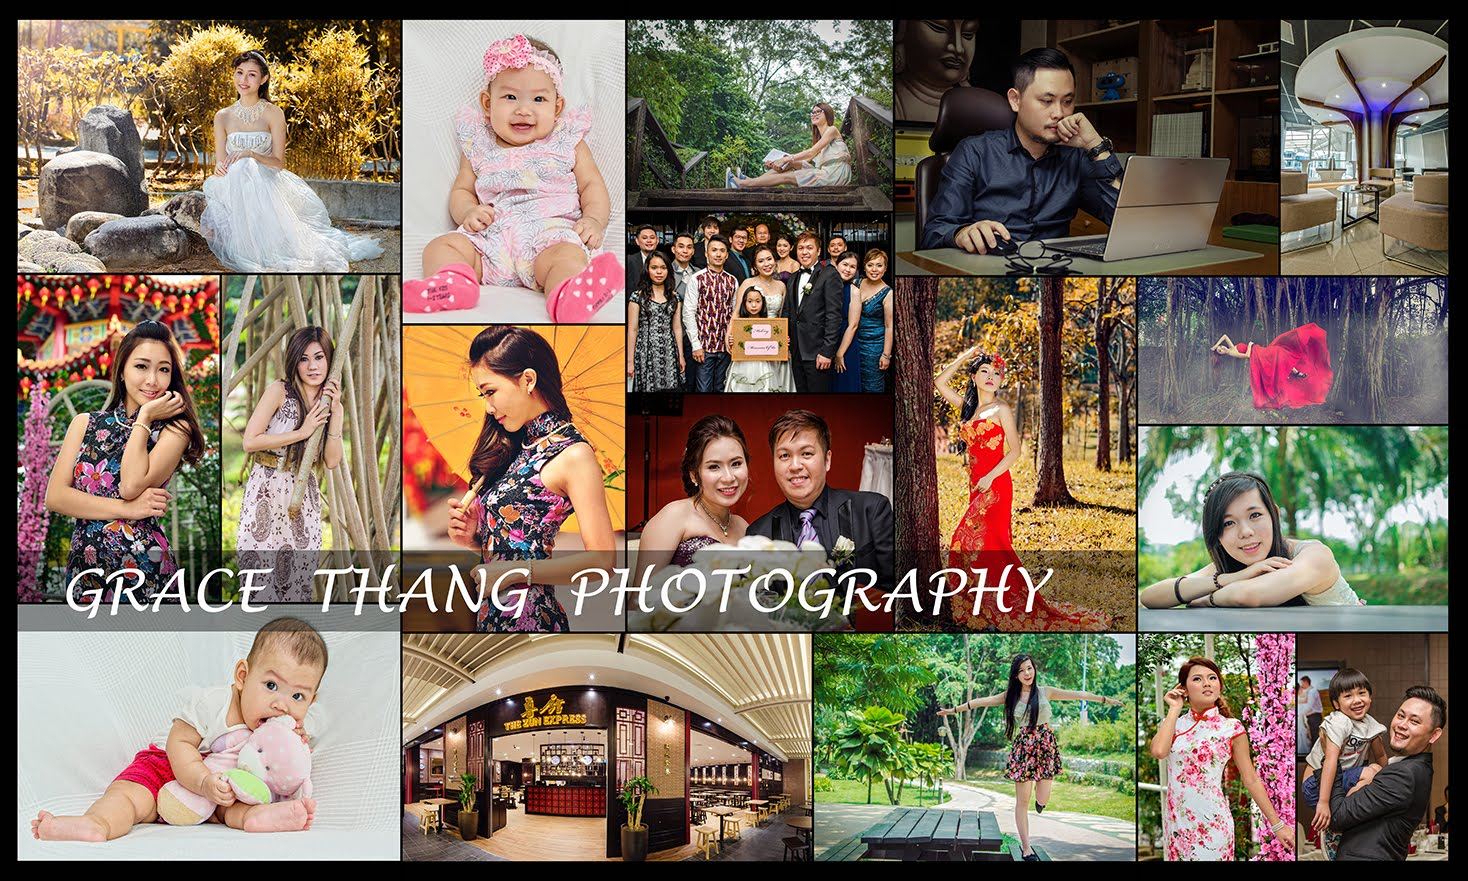 GRACE THANG PHOTOGRAPHY